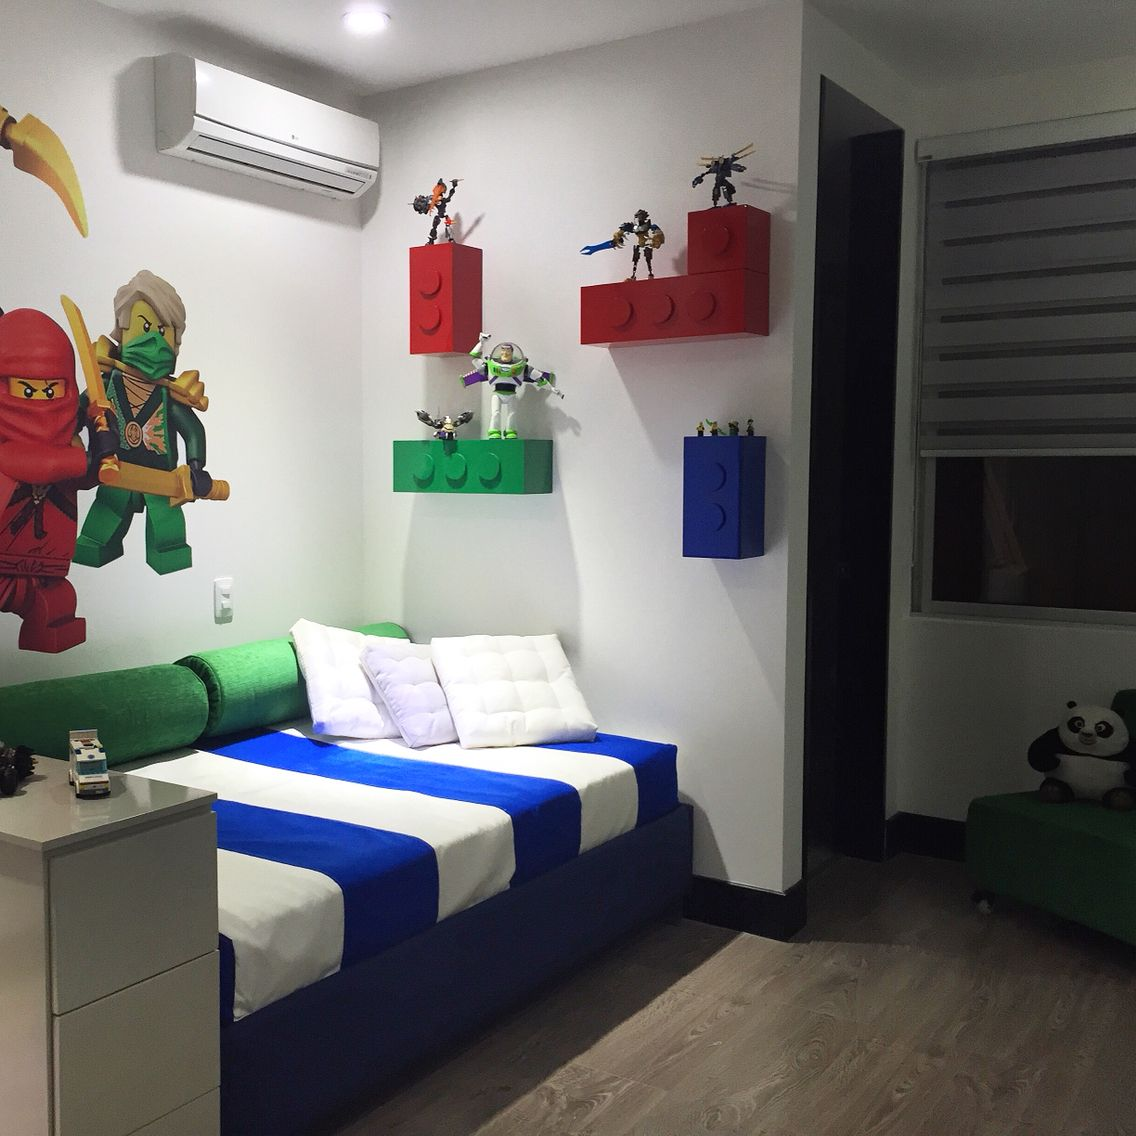 Lego Bedroom Kids Bedroom Sets Boys Bedroom Decor Lego Bedroom